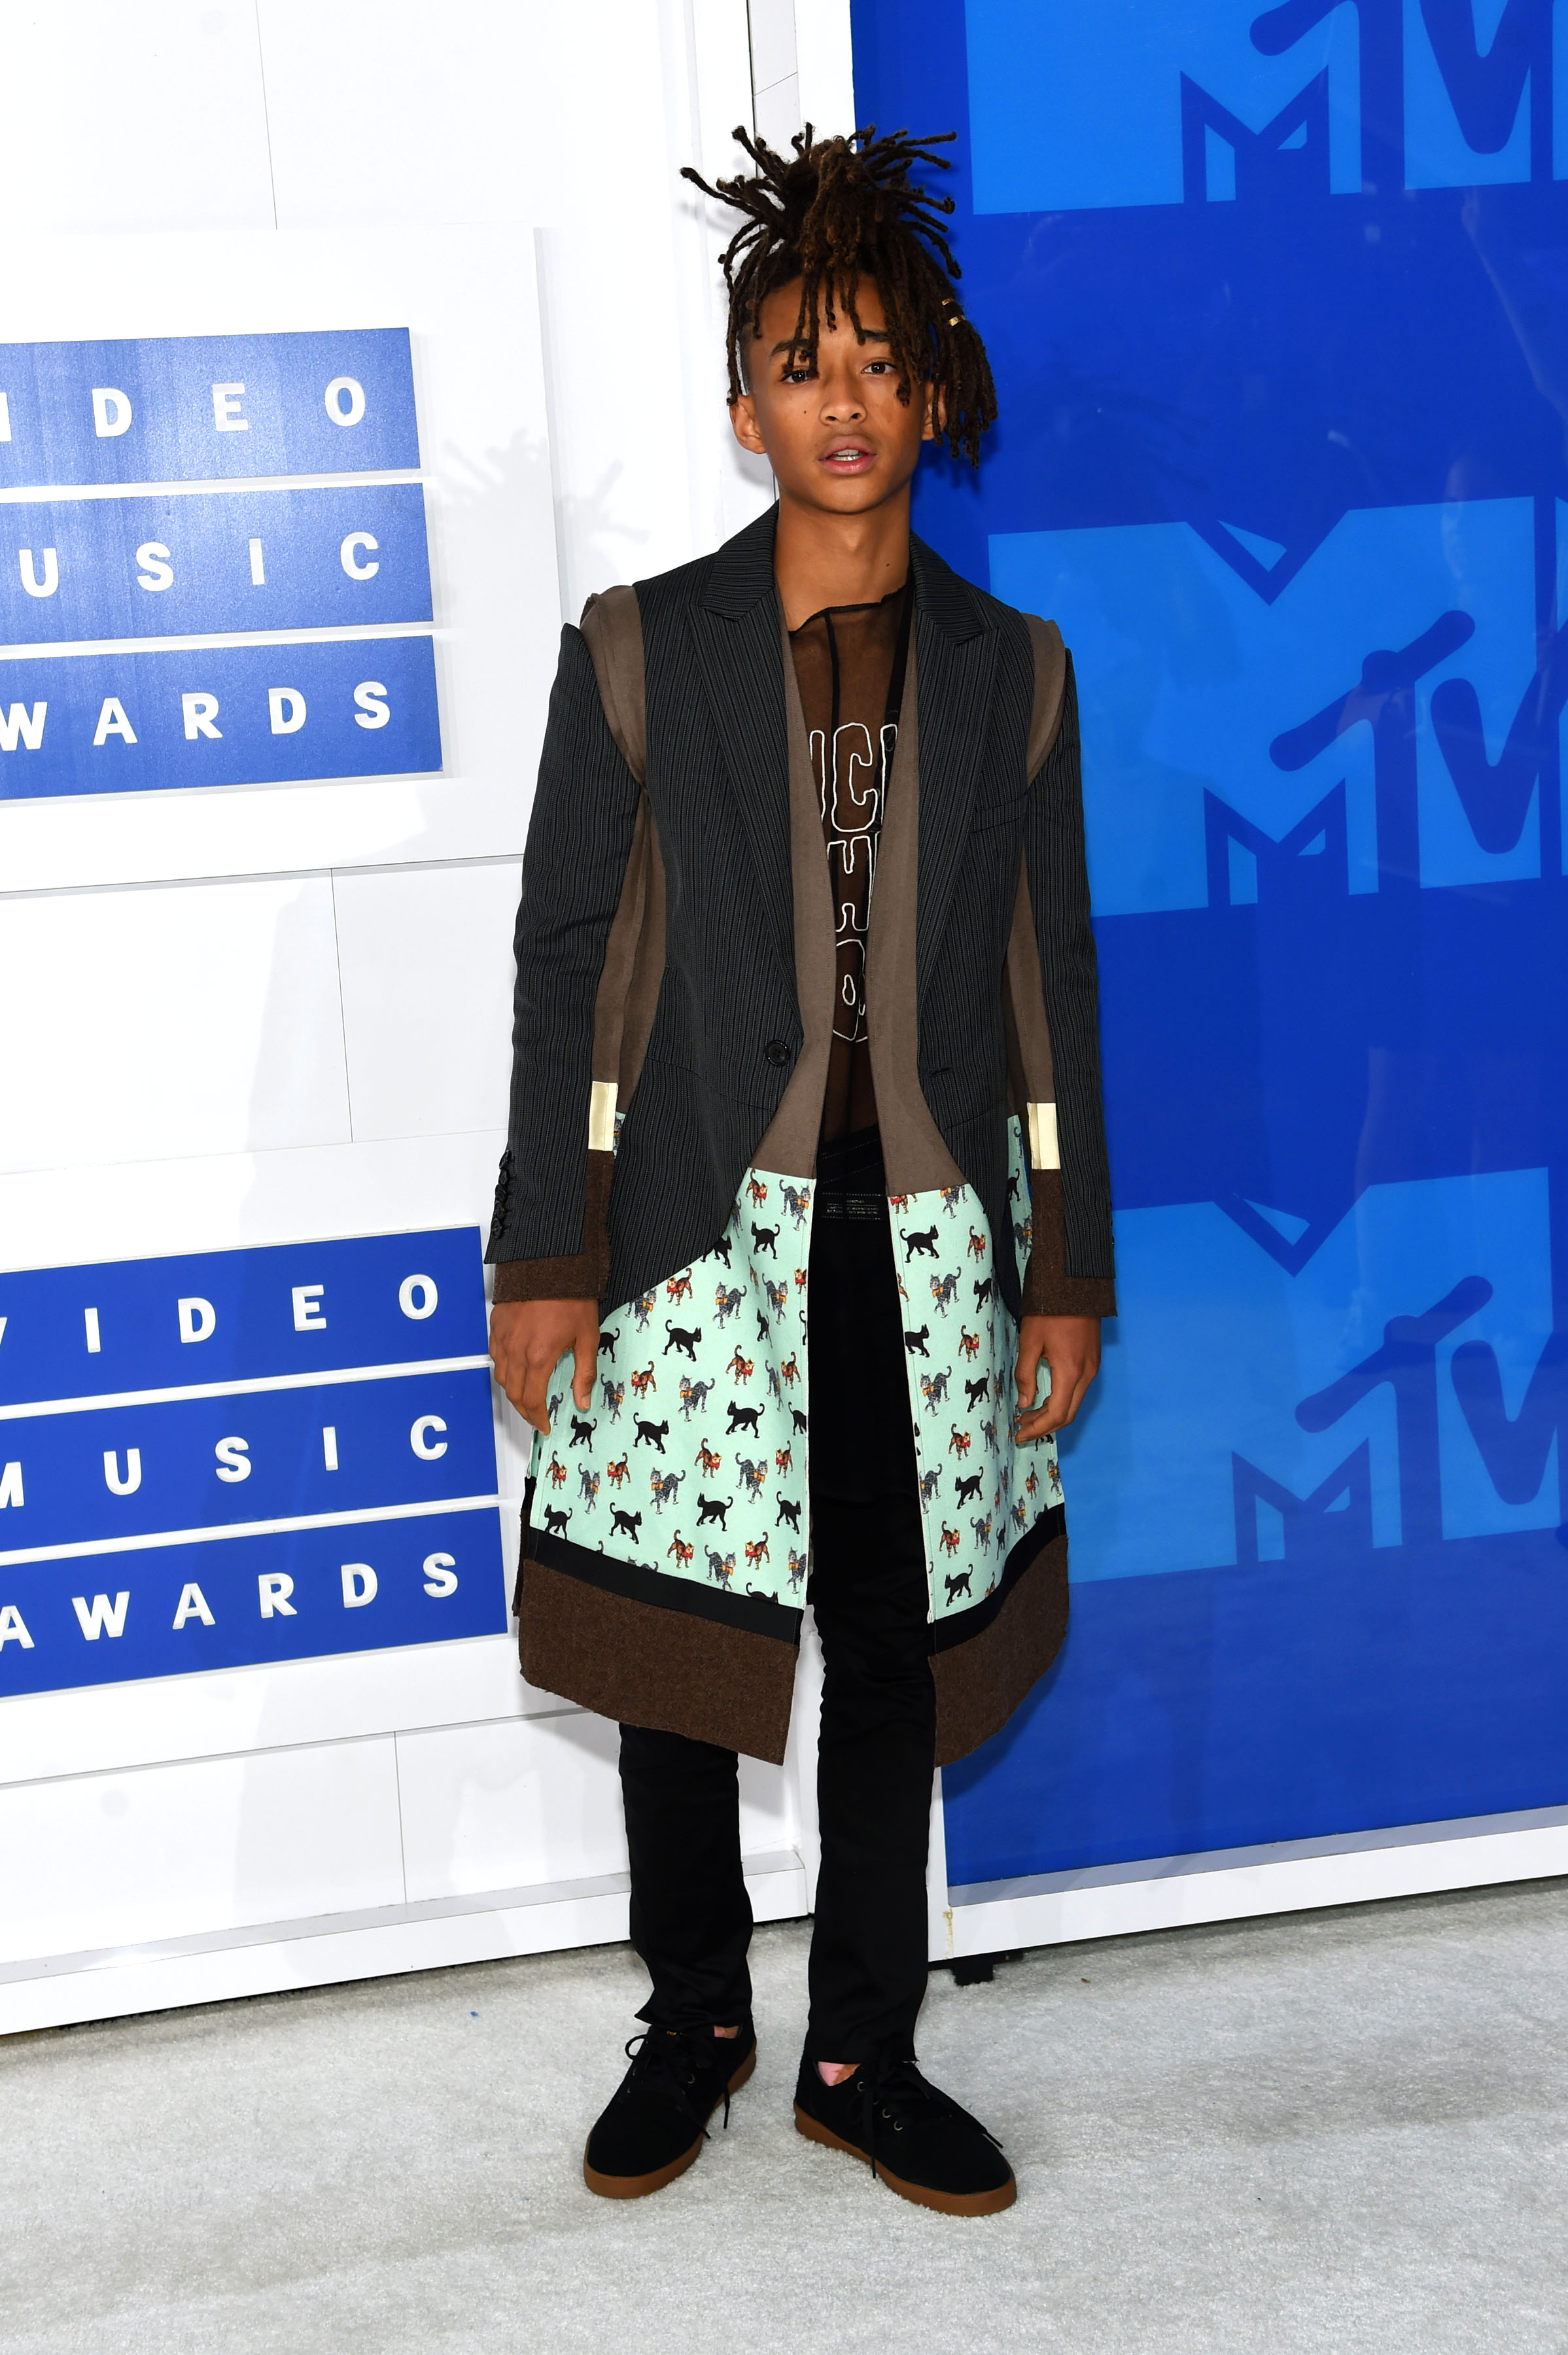 Jaden Smith attends the 2016 MTV Video Music Awards at Madison Square Garden on Aug. 28, 2016 in New York City.